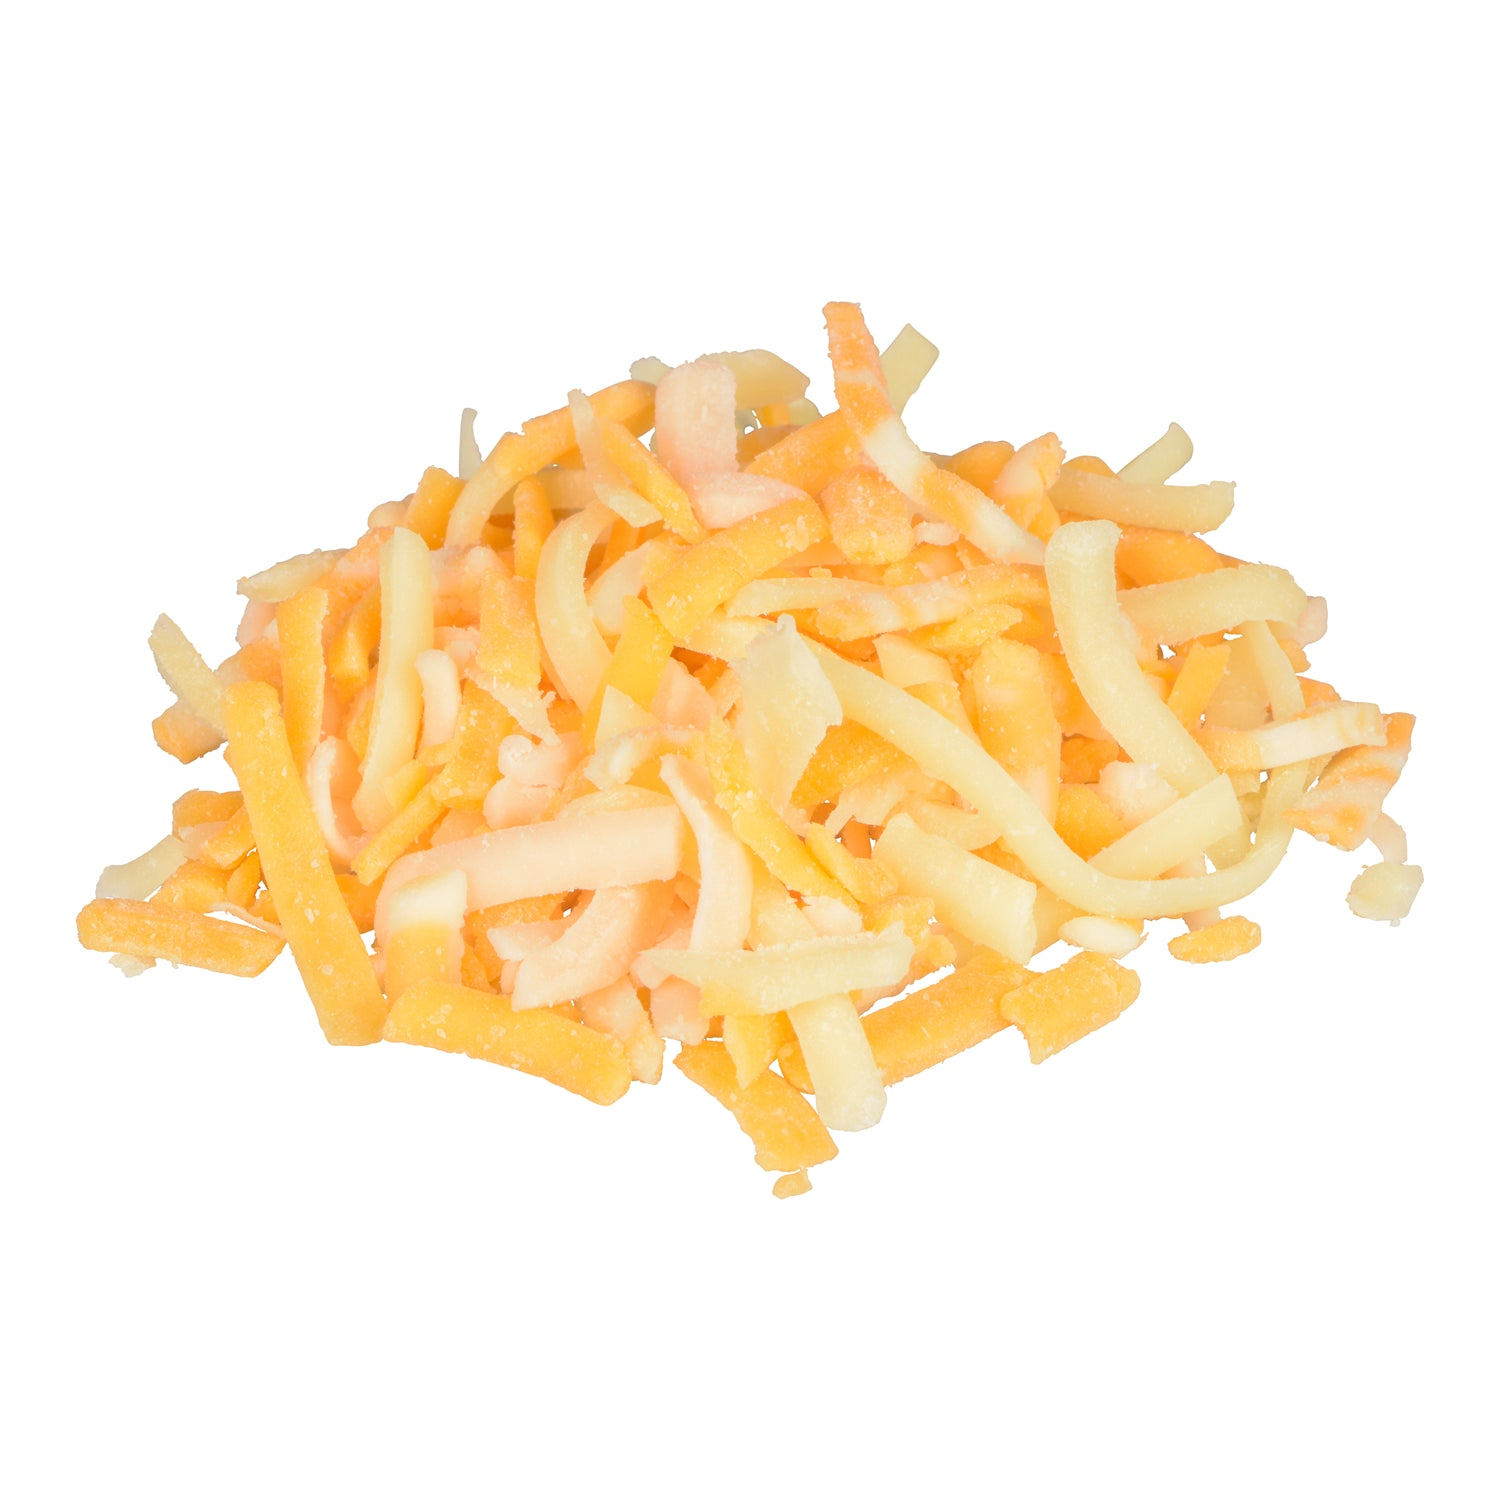 Armstrong Cheese Shredded Pub Mix - 4 Pack [$13.55/kg]